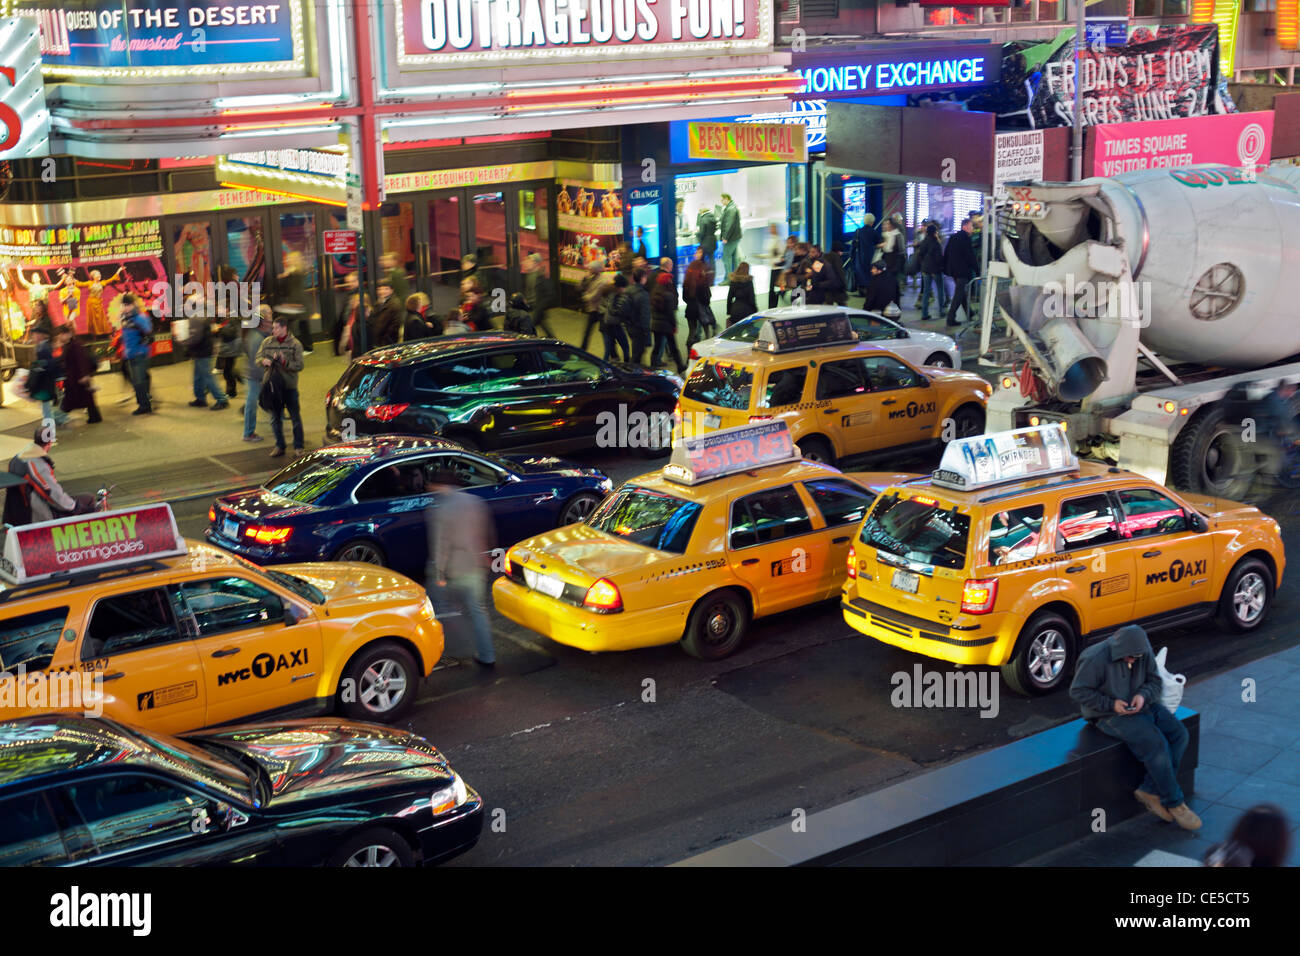 Taxis in Times Square - Stock Image